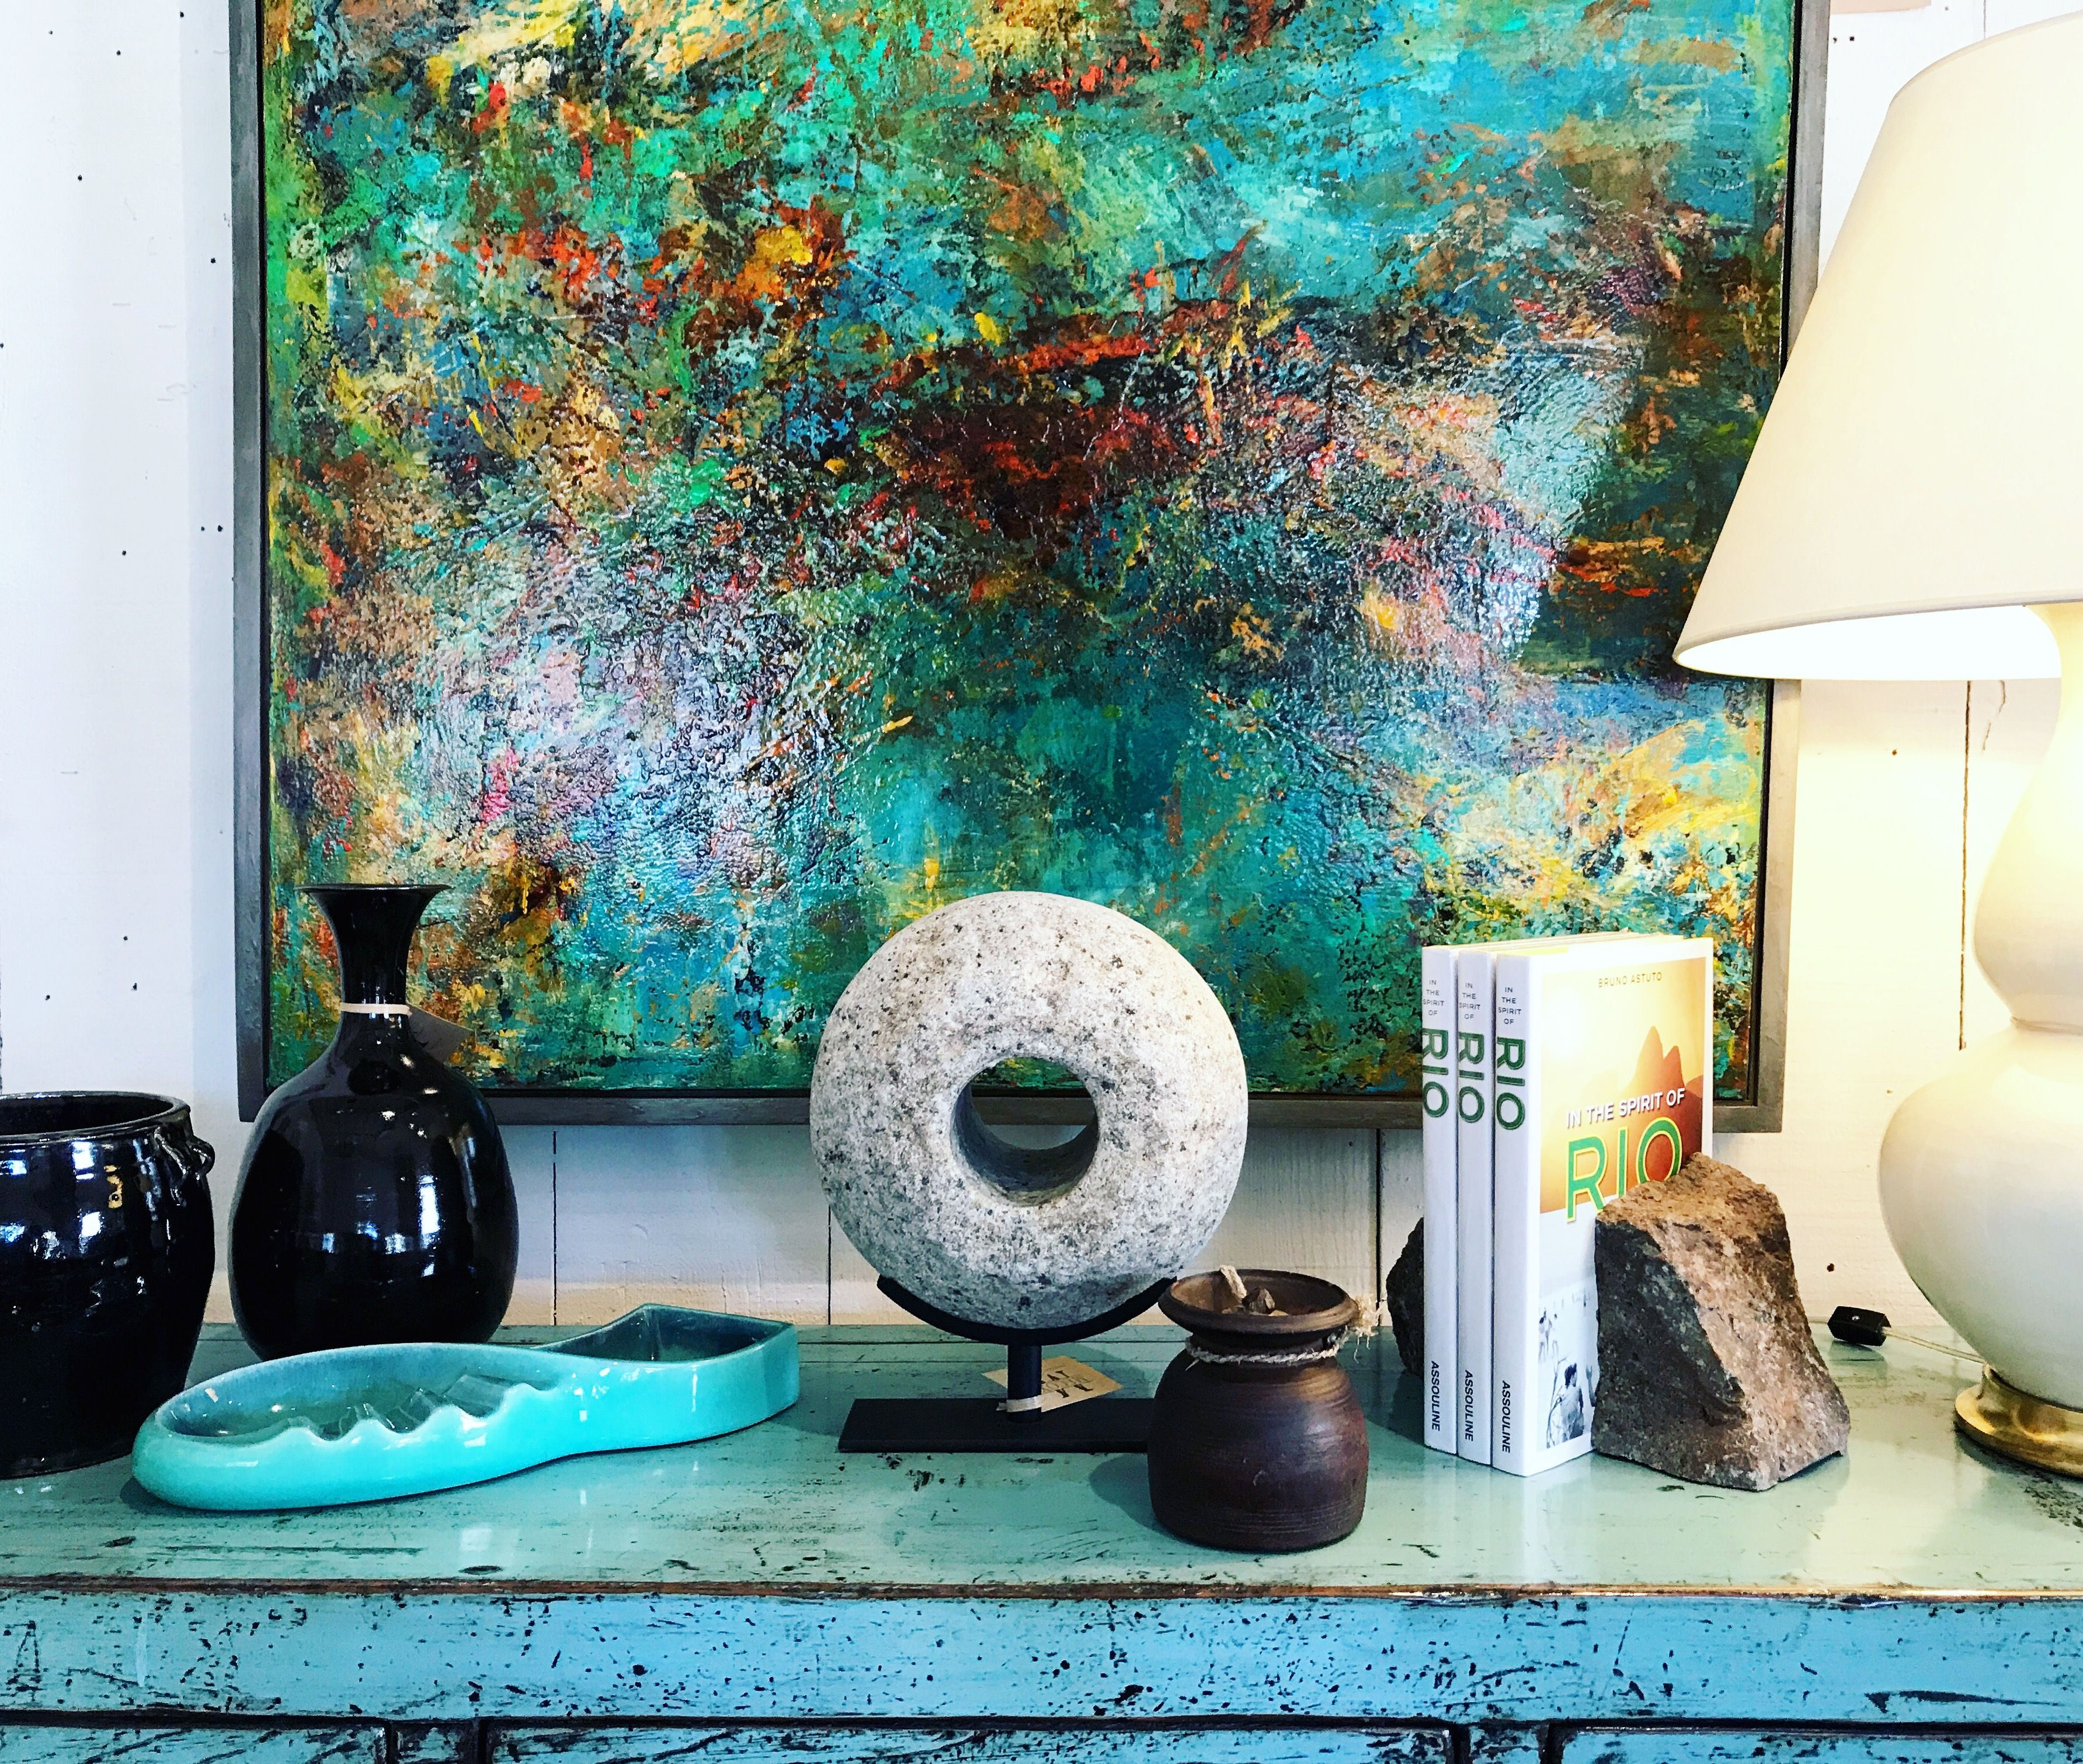 Garden Decor Los Angeles: Vintage Accents And Original Art To Curate Your Dream